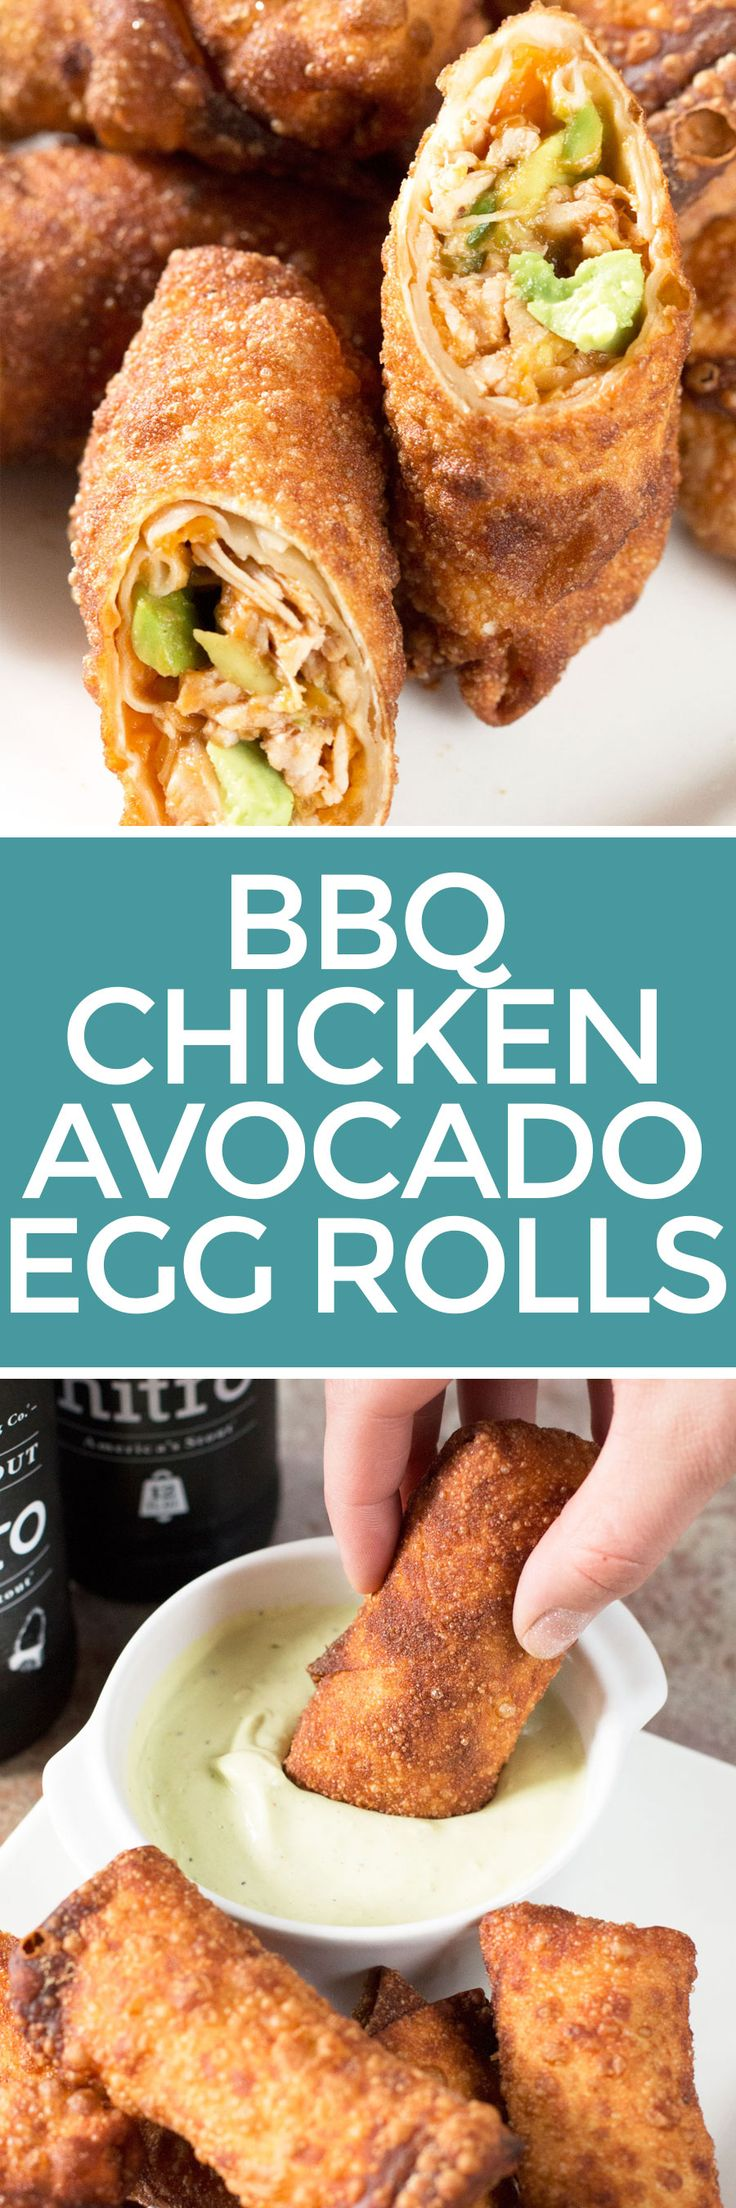 Avocado Eggrolls with BBQ Chicken – Cake 'n Knife